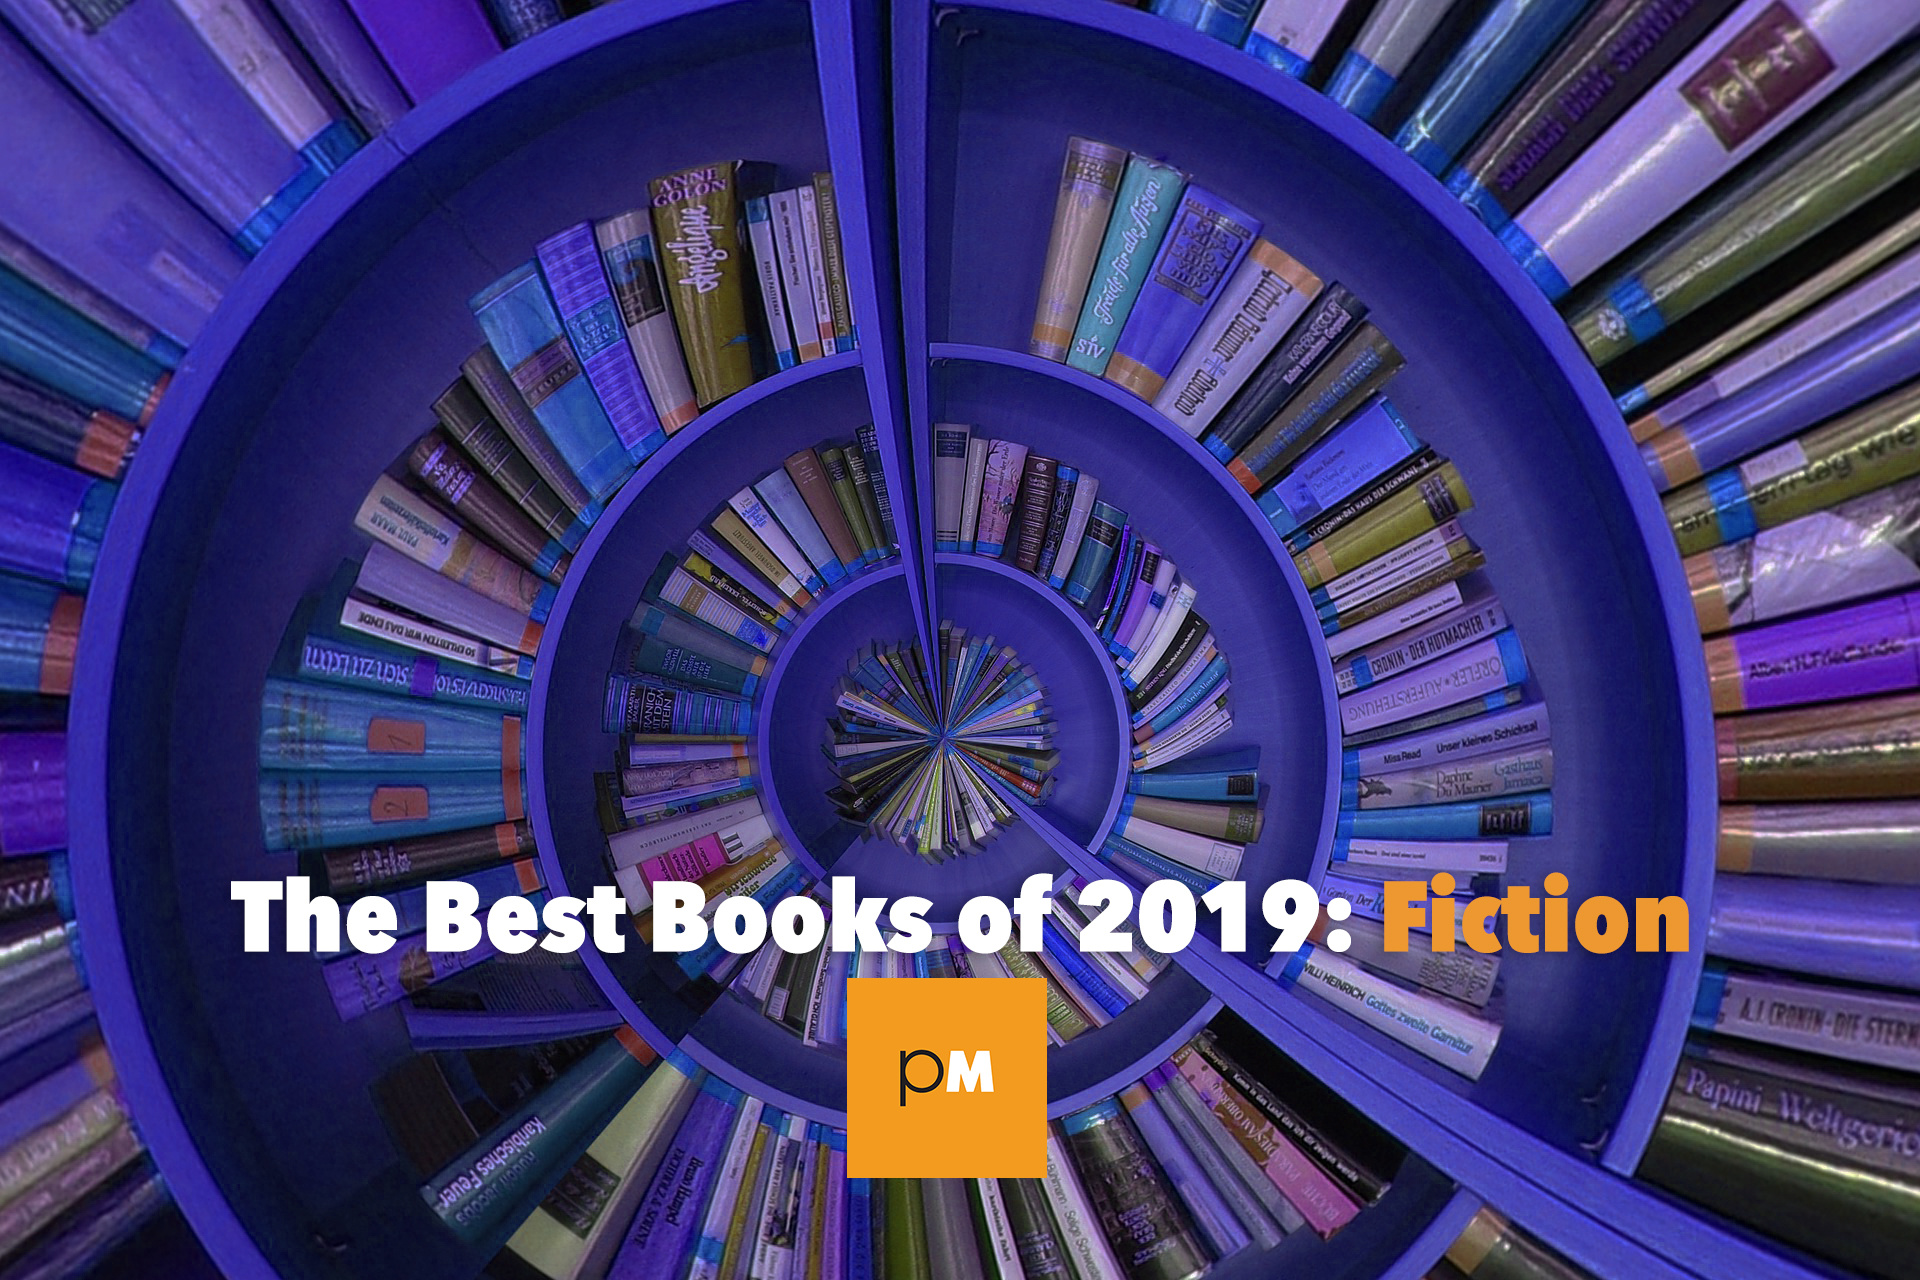 The Best Books of 2019: Fiction